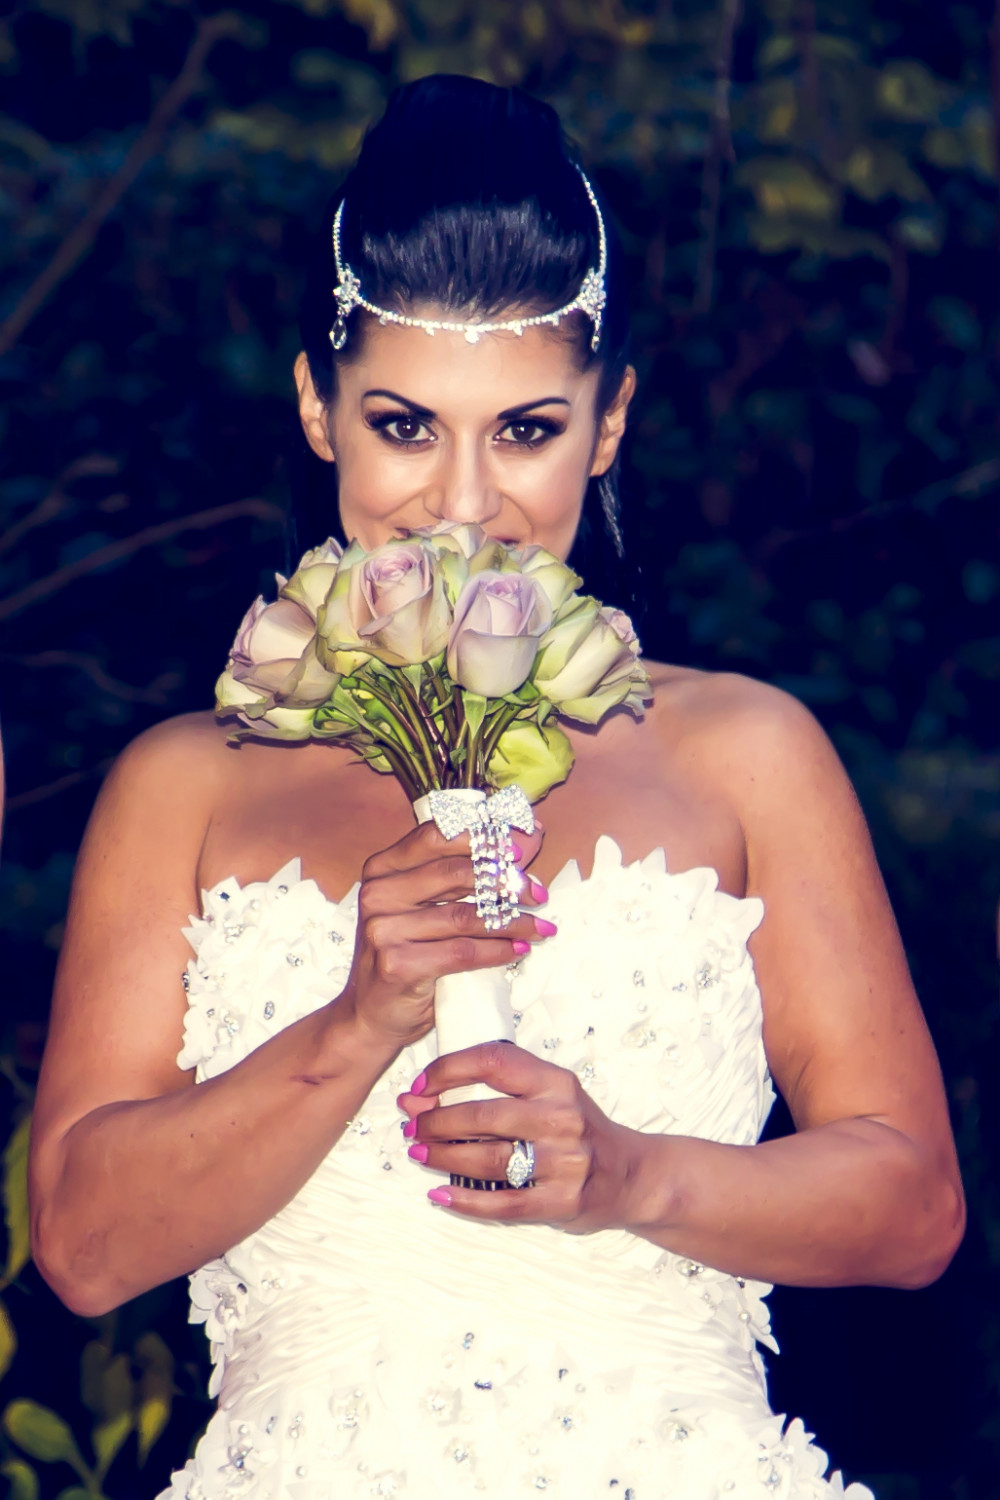 South Lodge Wedding. Hair and Make Up by me. The brides personality was expressed with her statement choice of hairstyle and hair accessory. I love the intensity of her make up. - Make Me Bridal Artist: Jenna West Make Up.